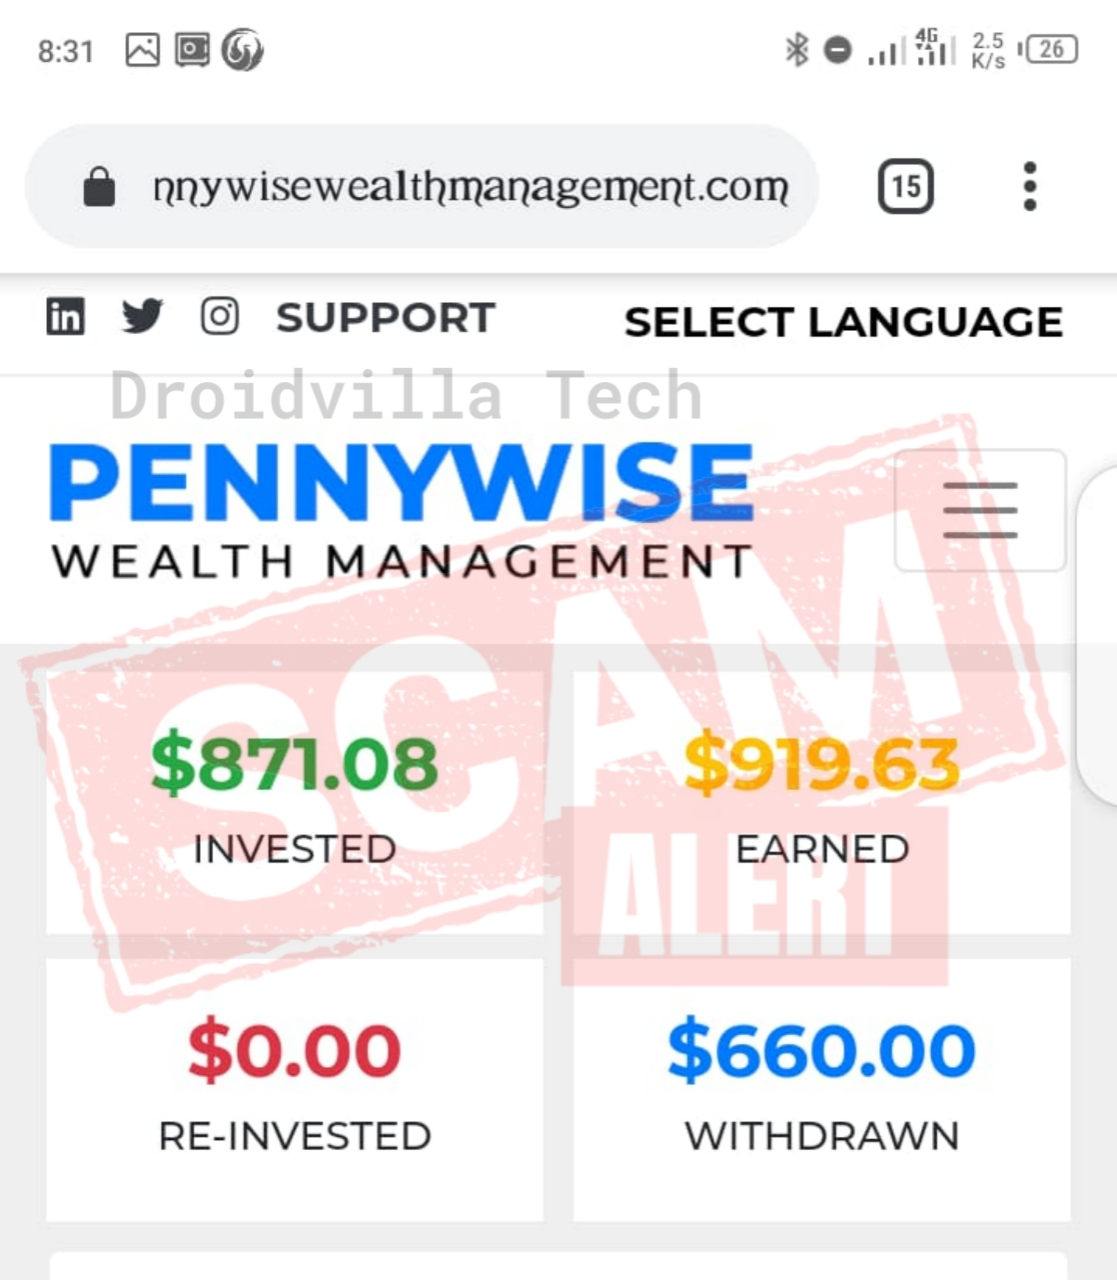 Pennywisewealthmanagement scam internet